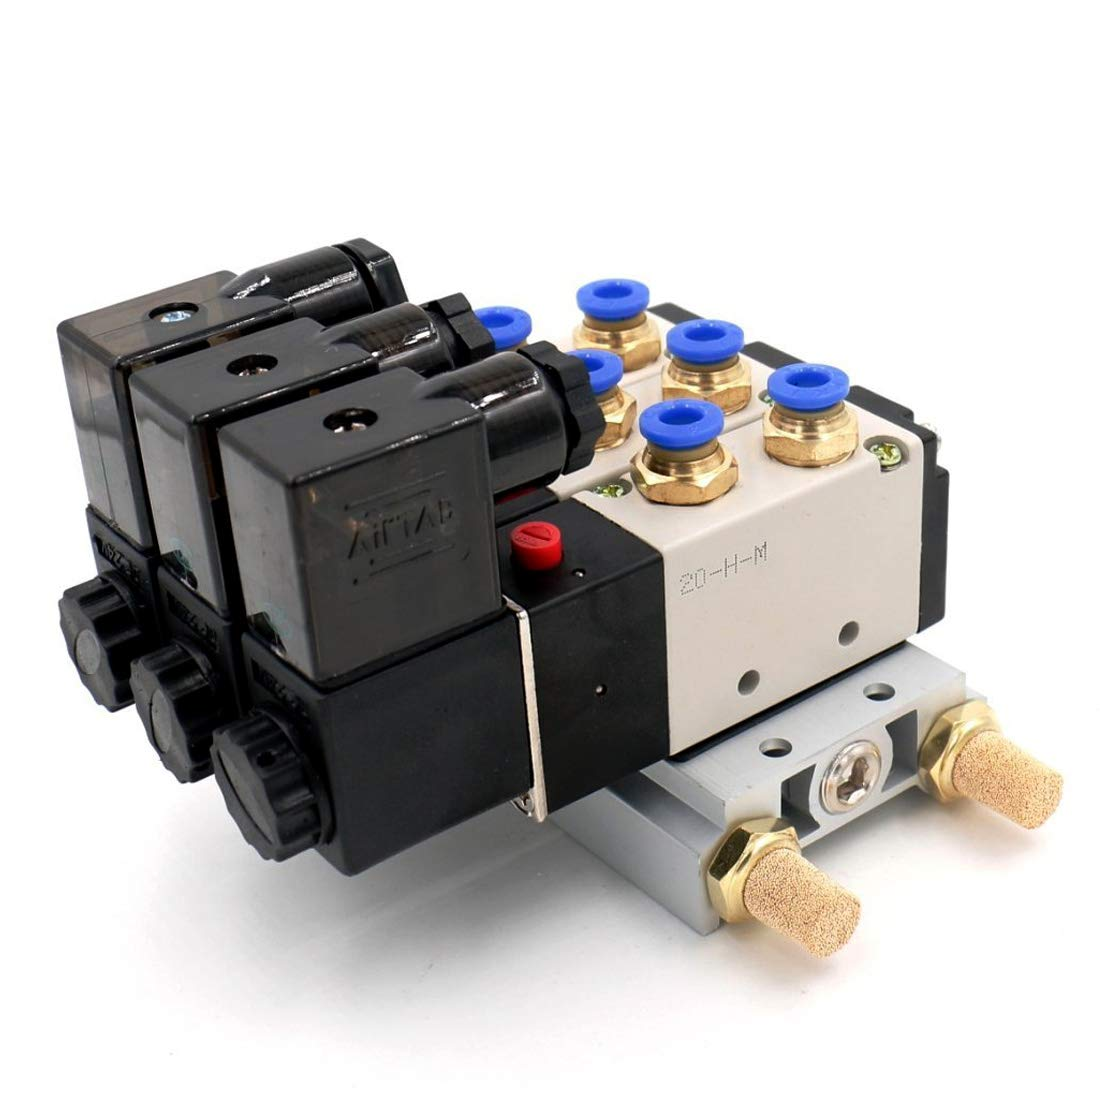 Woljay Pneumatic Solenoid Air Valve 4V210-08 AC 380V PT 1//4 2 Position 5 Way Normally Closed 3 Pneumatic Solenoid with Base Quick Fittings Muffler Set